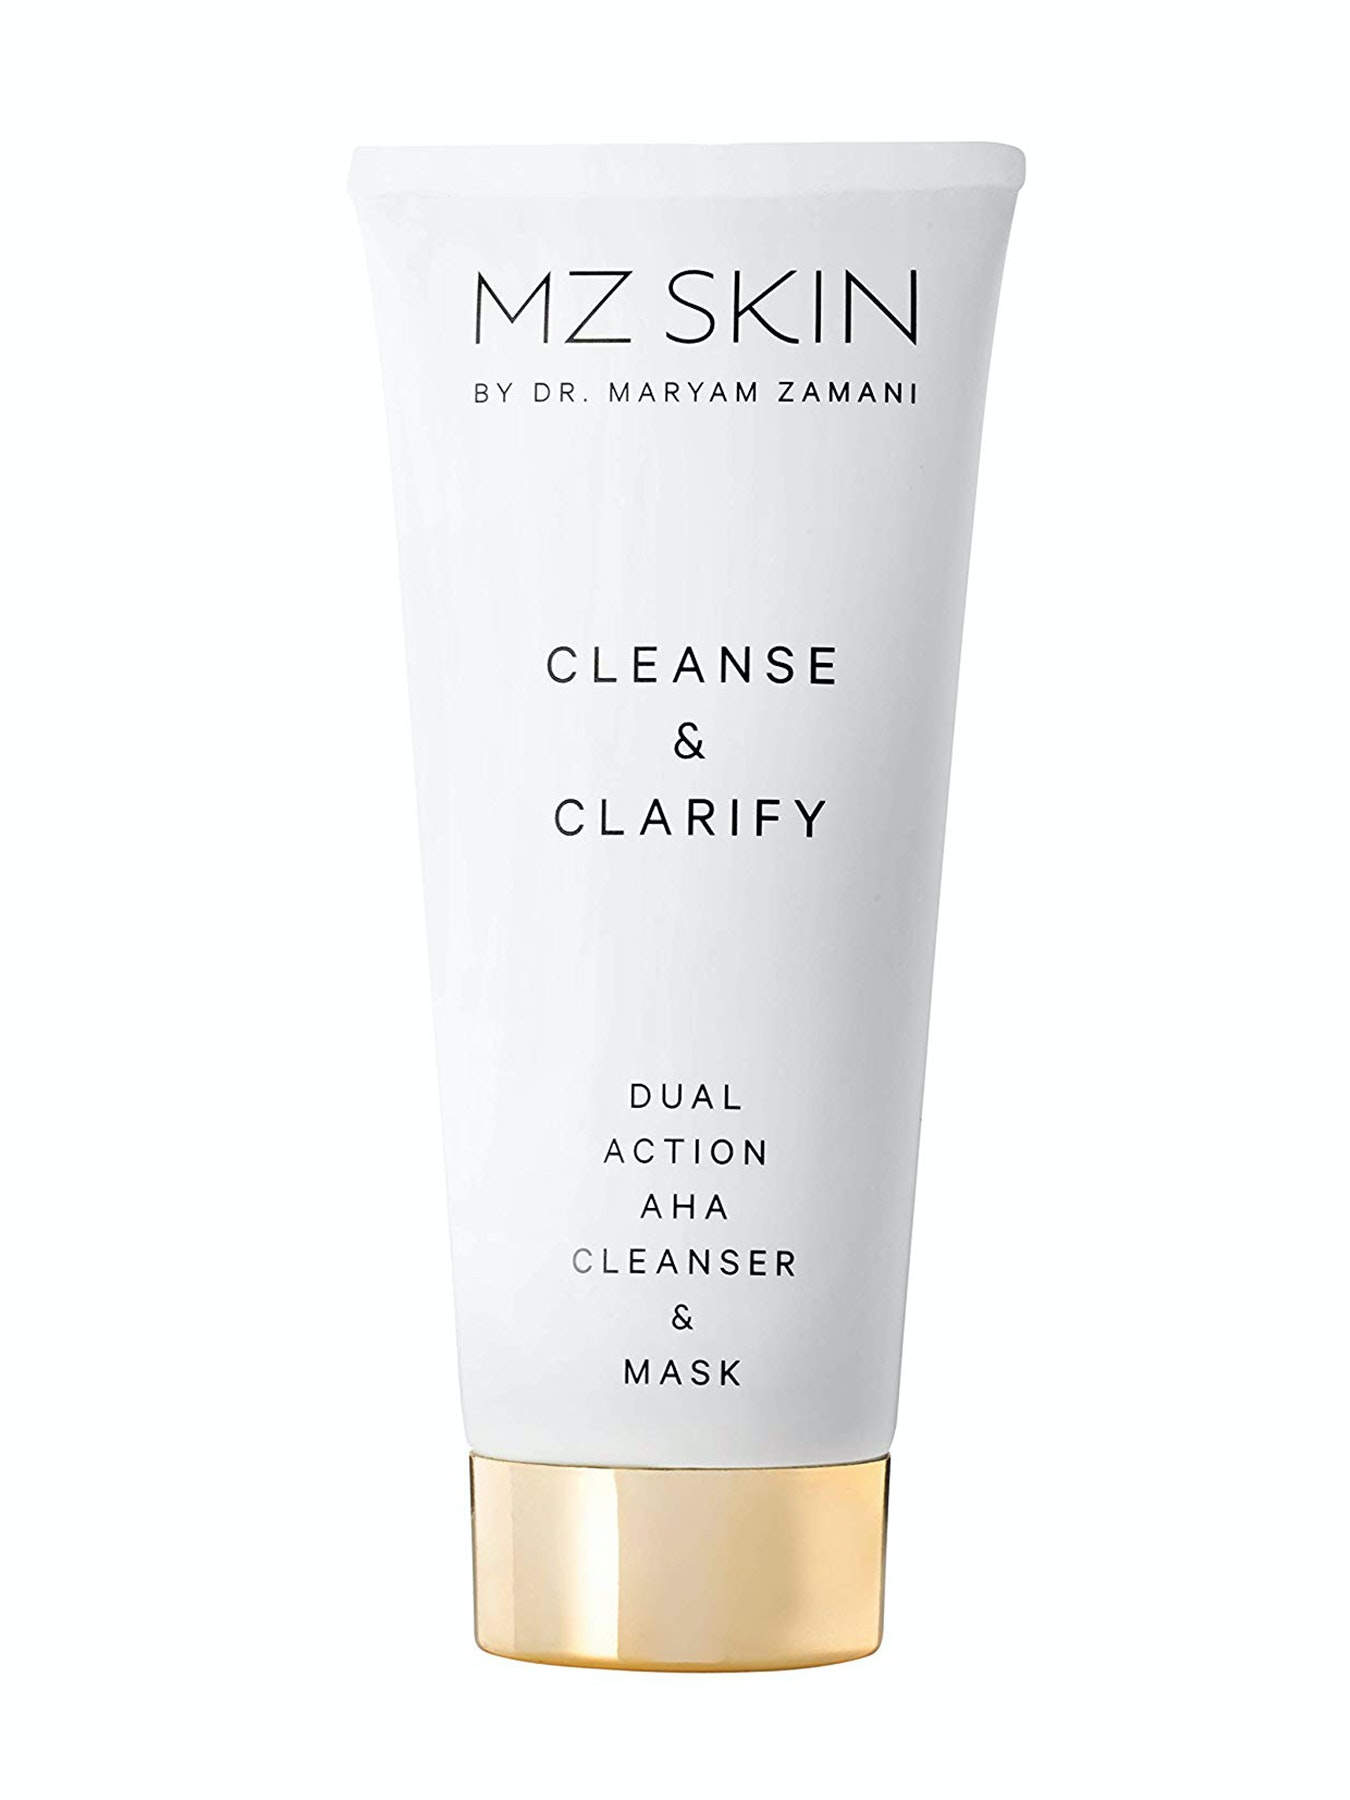 MZ Skin Cleanse & Clarify Dual Action AHA Cleanser and Mask